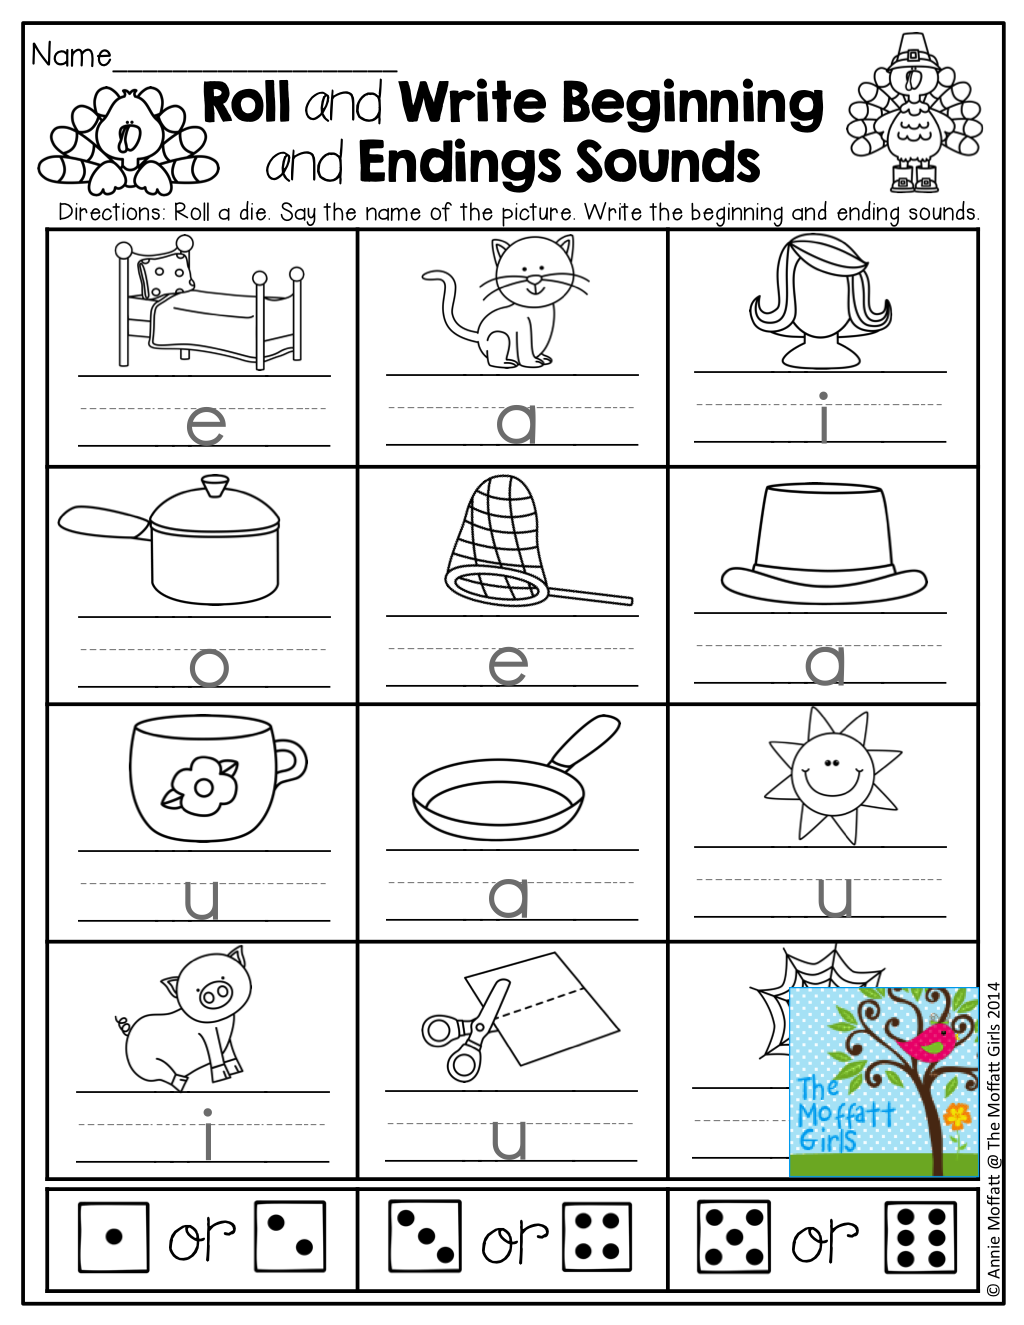 cvc words beginning and ending sounds roll a die and write the